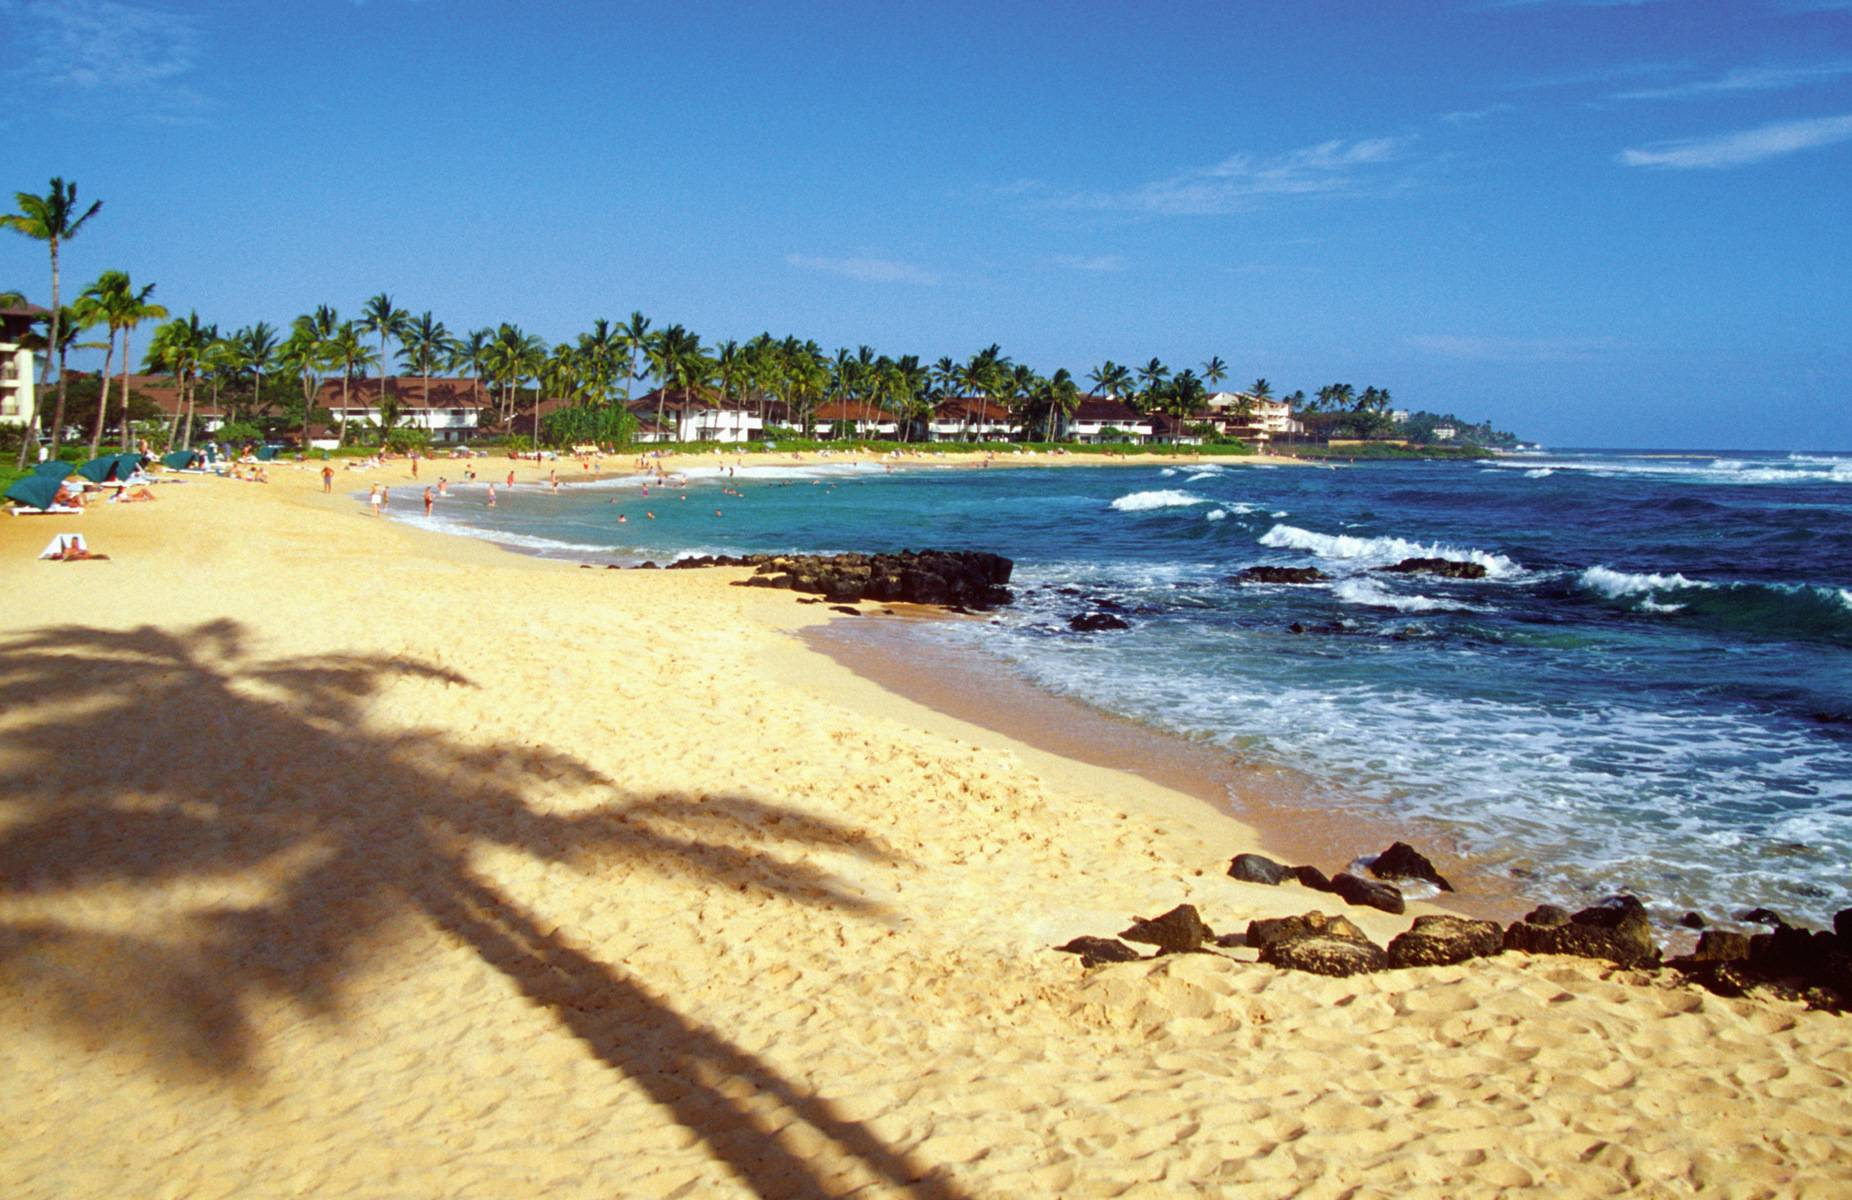 1-Day Tour to Grand Circle Island, Big Island, Hawaii